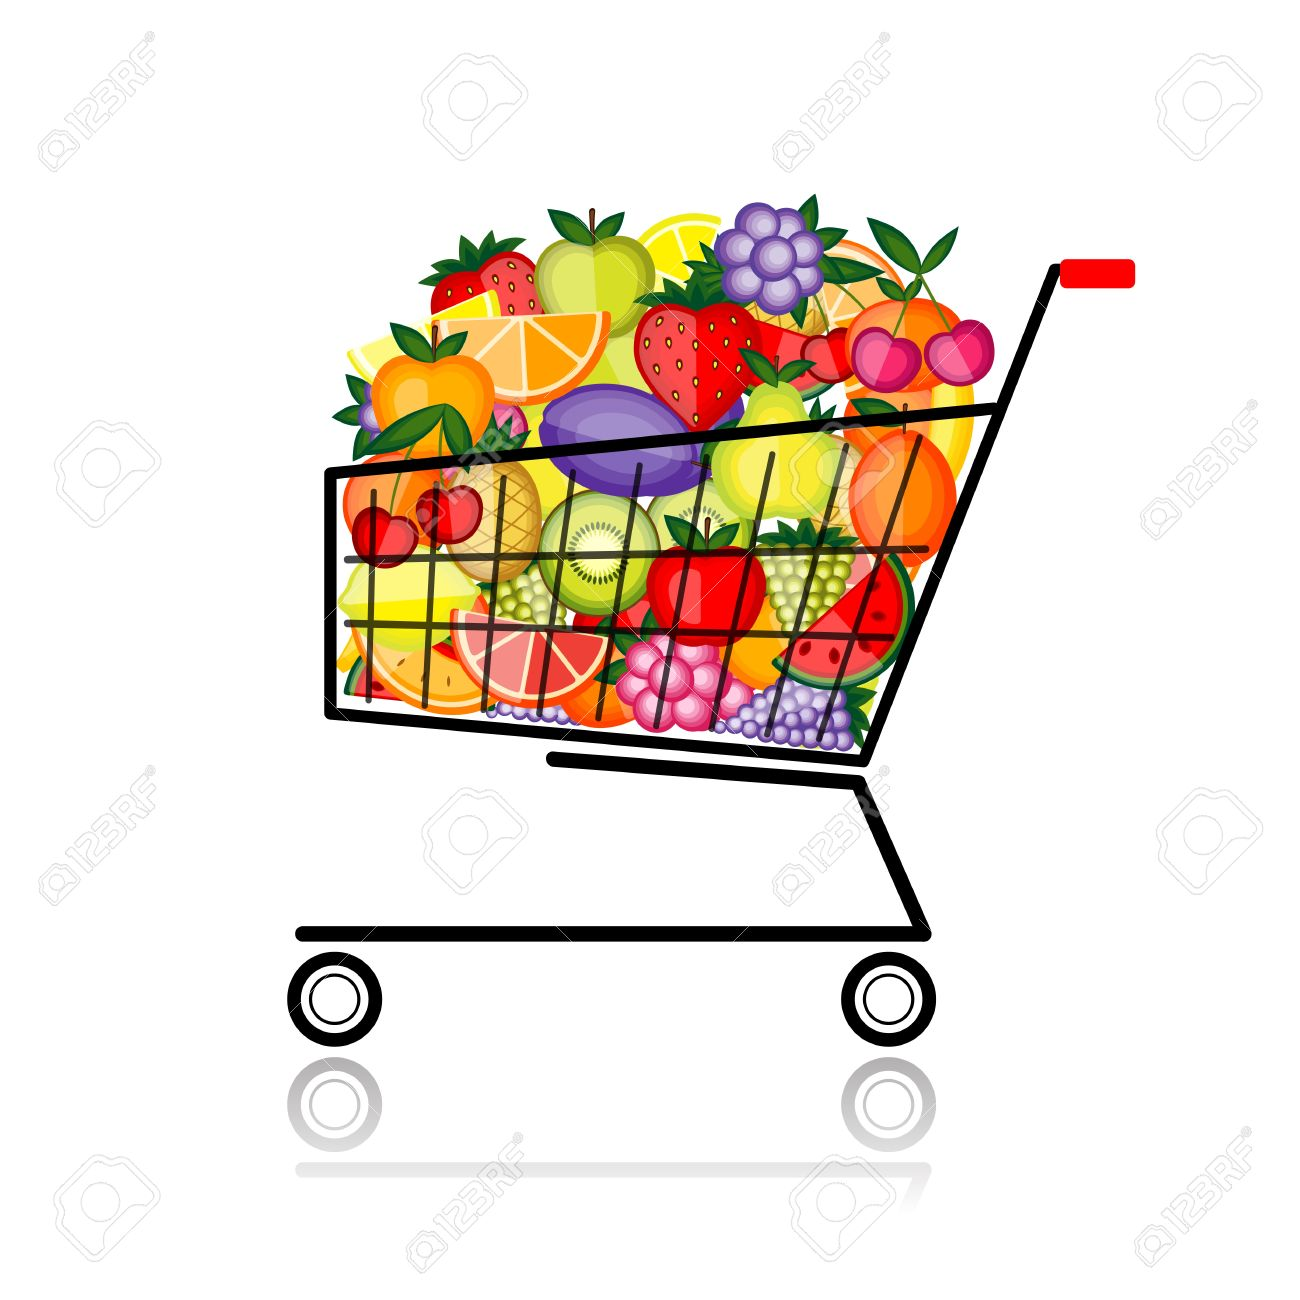 Full Grocery Cart Clipart Fruits in shopping cart for